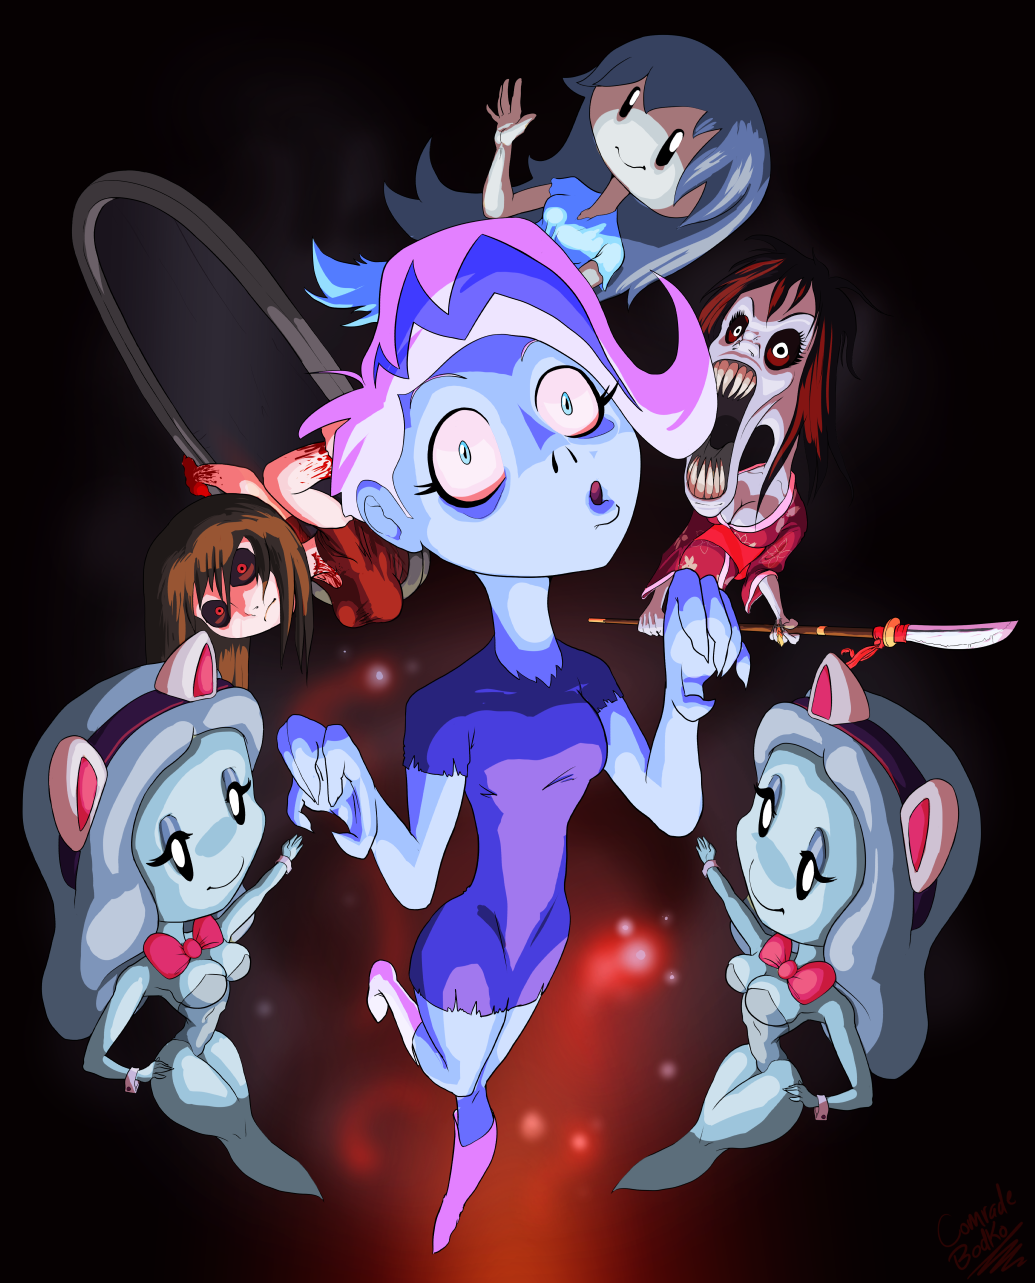 All of the Ghost Girls